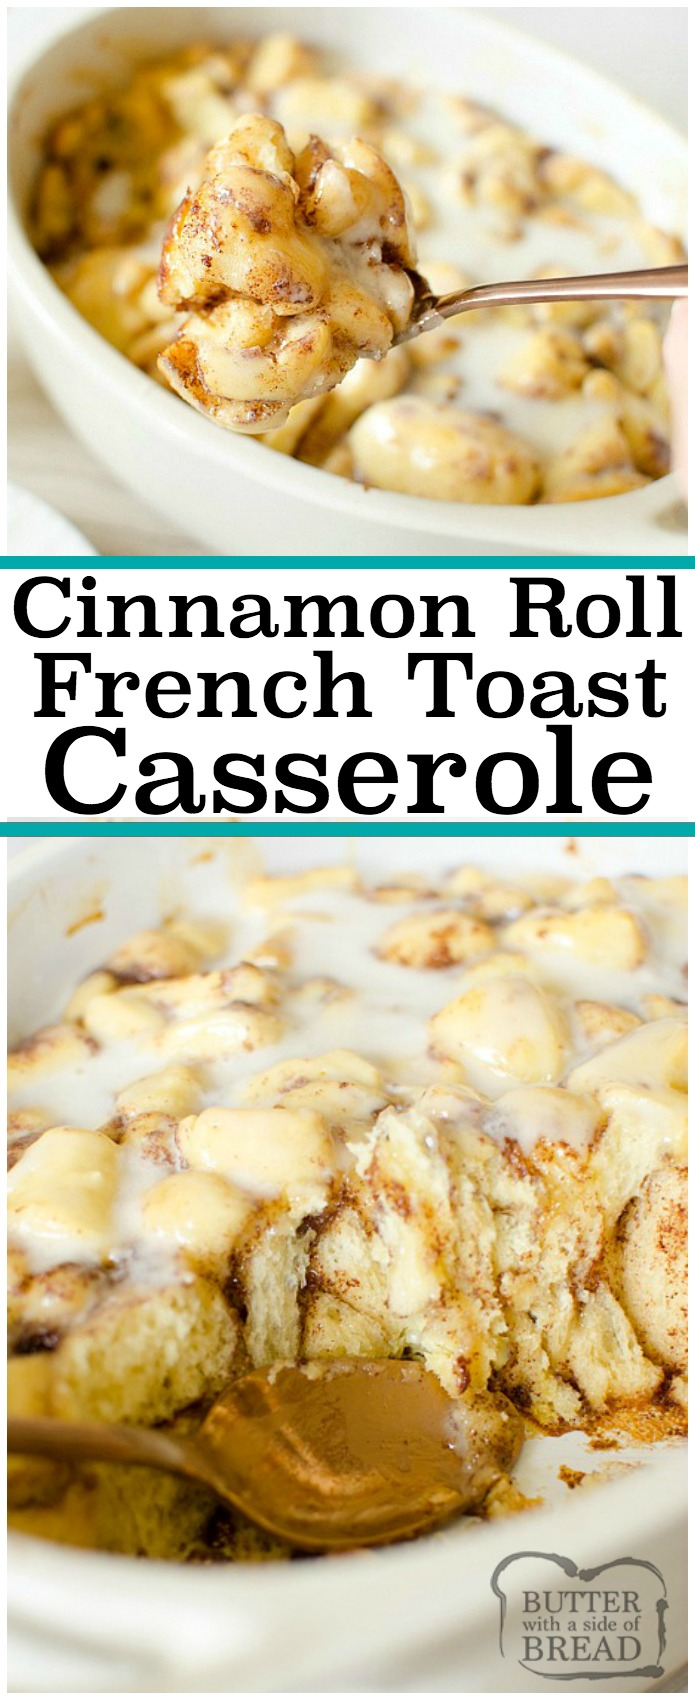 Cinnamon Roll French Toast Casserole is a quick, easy breakfast that everyone loves!  This baked French Toast bake is perfect for brunch or holidays. Refrigerated cinnamon rolls make this recipe easier than ever! #frenchtoast #cinnamonroll #casserole #breakfast #baking #sweets #recipe from BUTTER WITH A SIDE OF BREAD